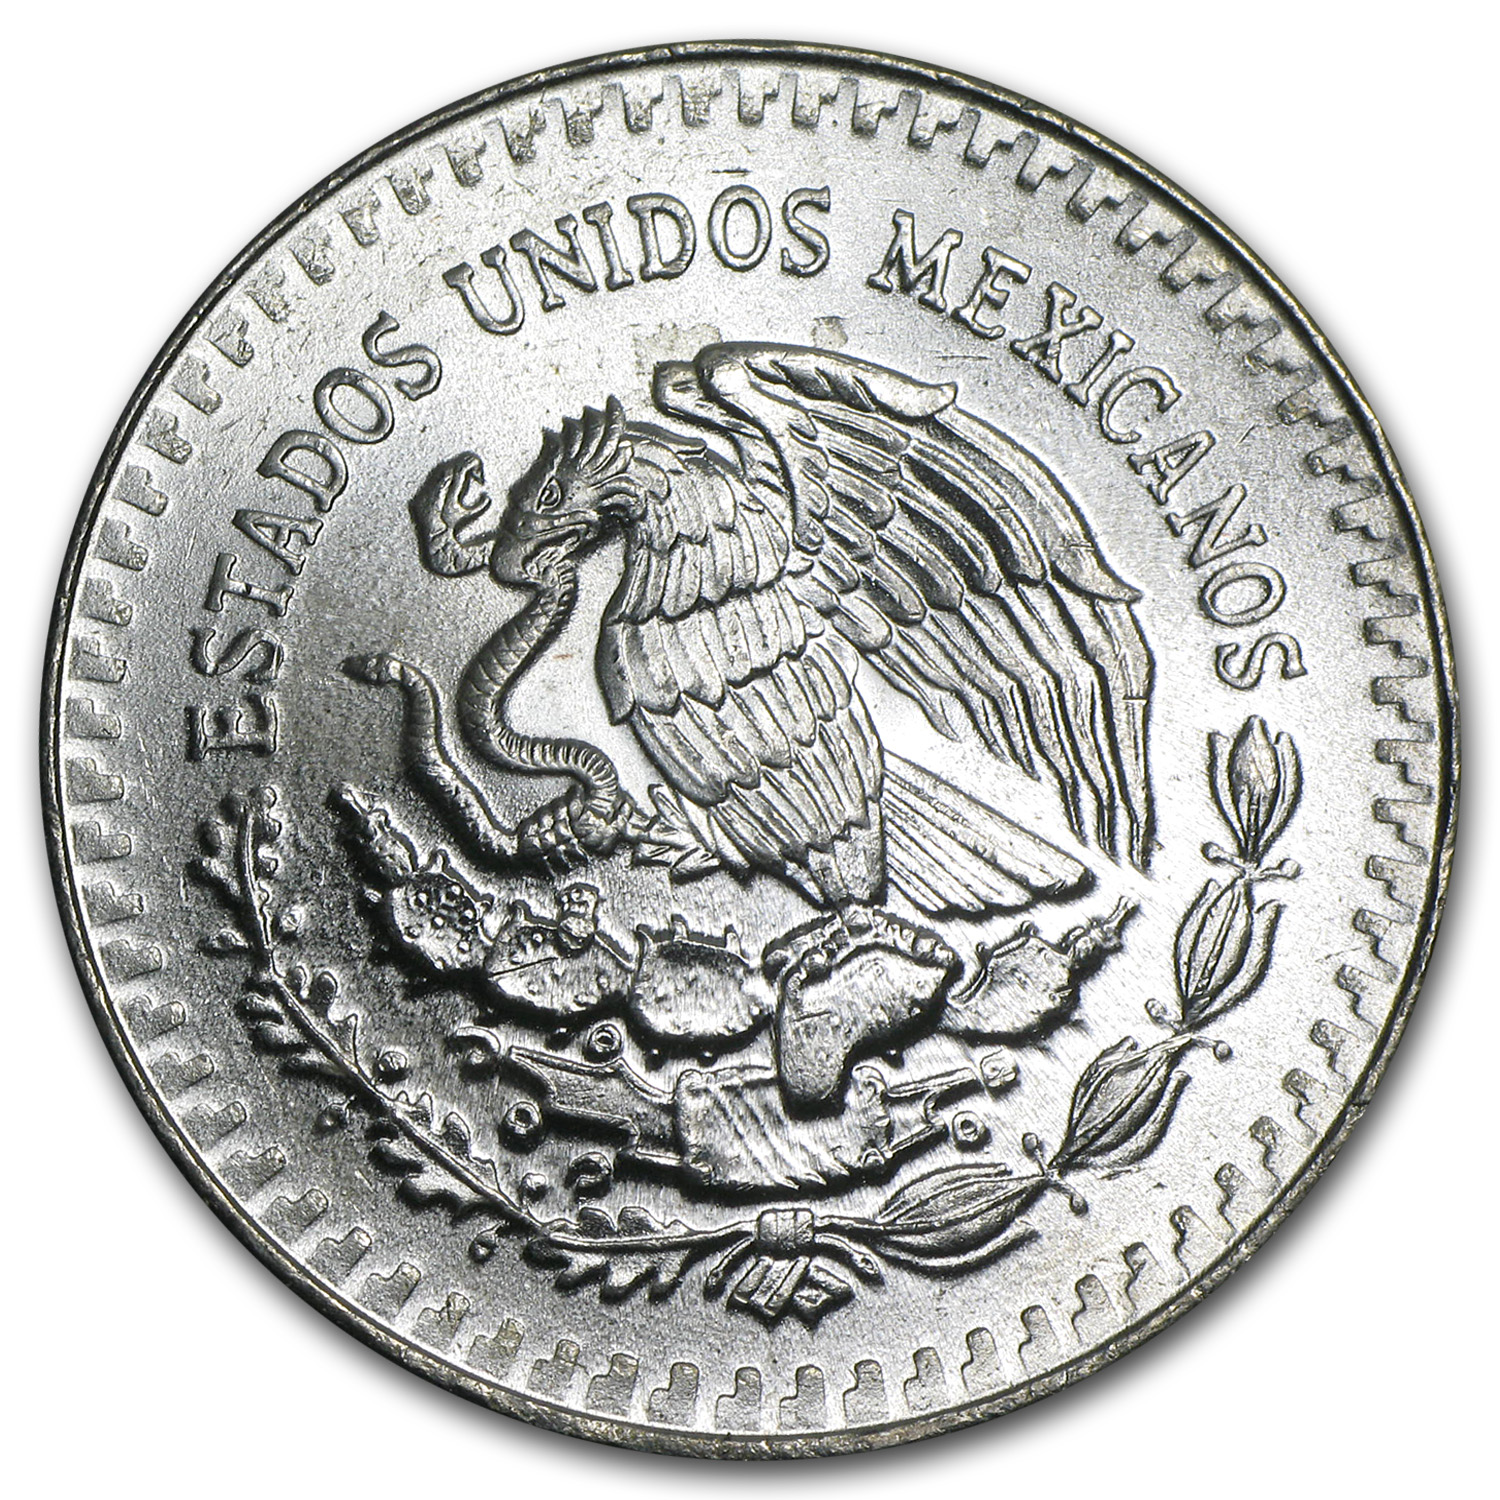 1985 1 oz Silver Mexican Libertad (Brilliant Uncirculated)